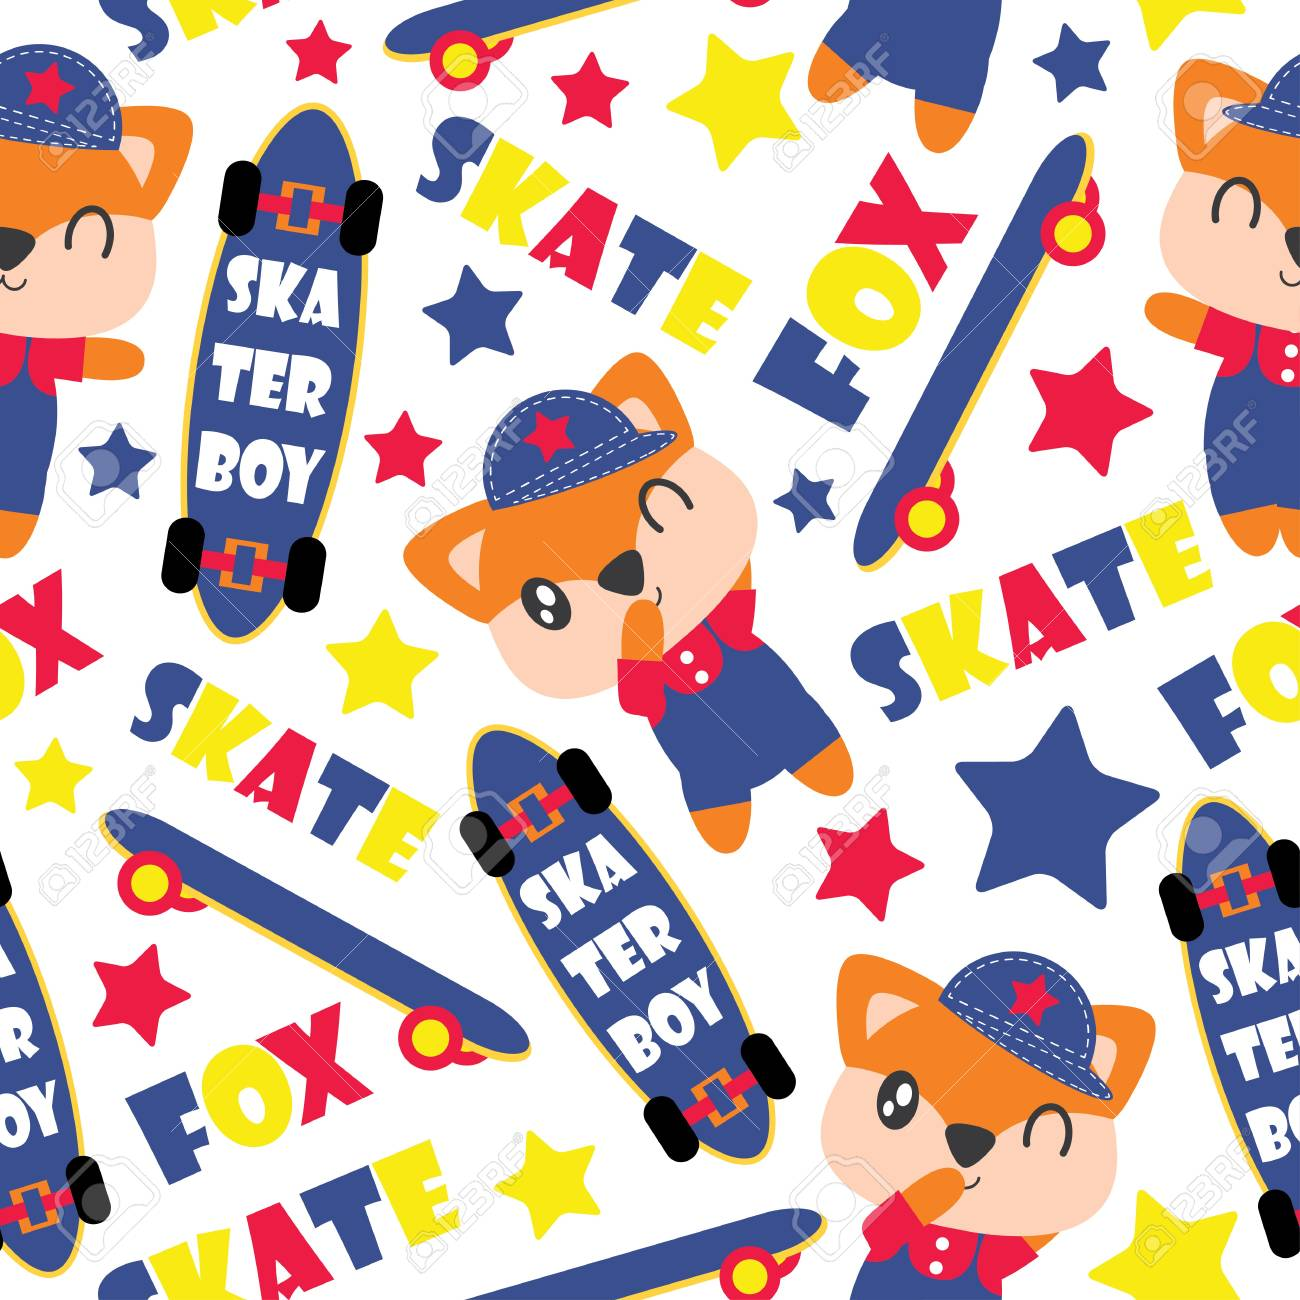 A Pattern Of Cute Fox Boy And Skateboards Cartoon Illustration For Baby  Shower Wrapping Paper,